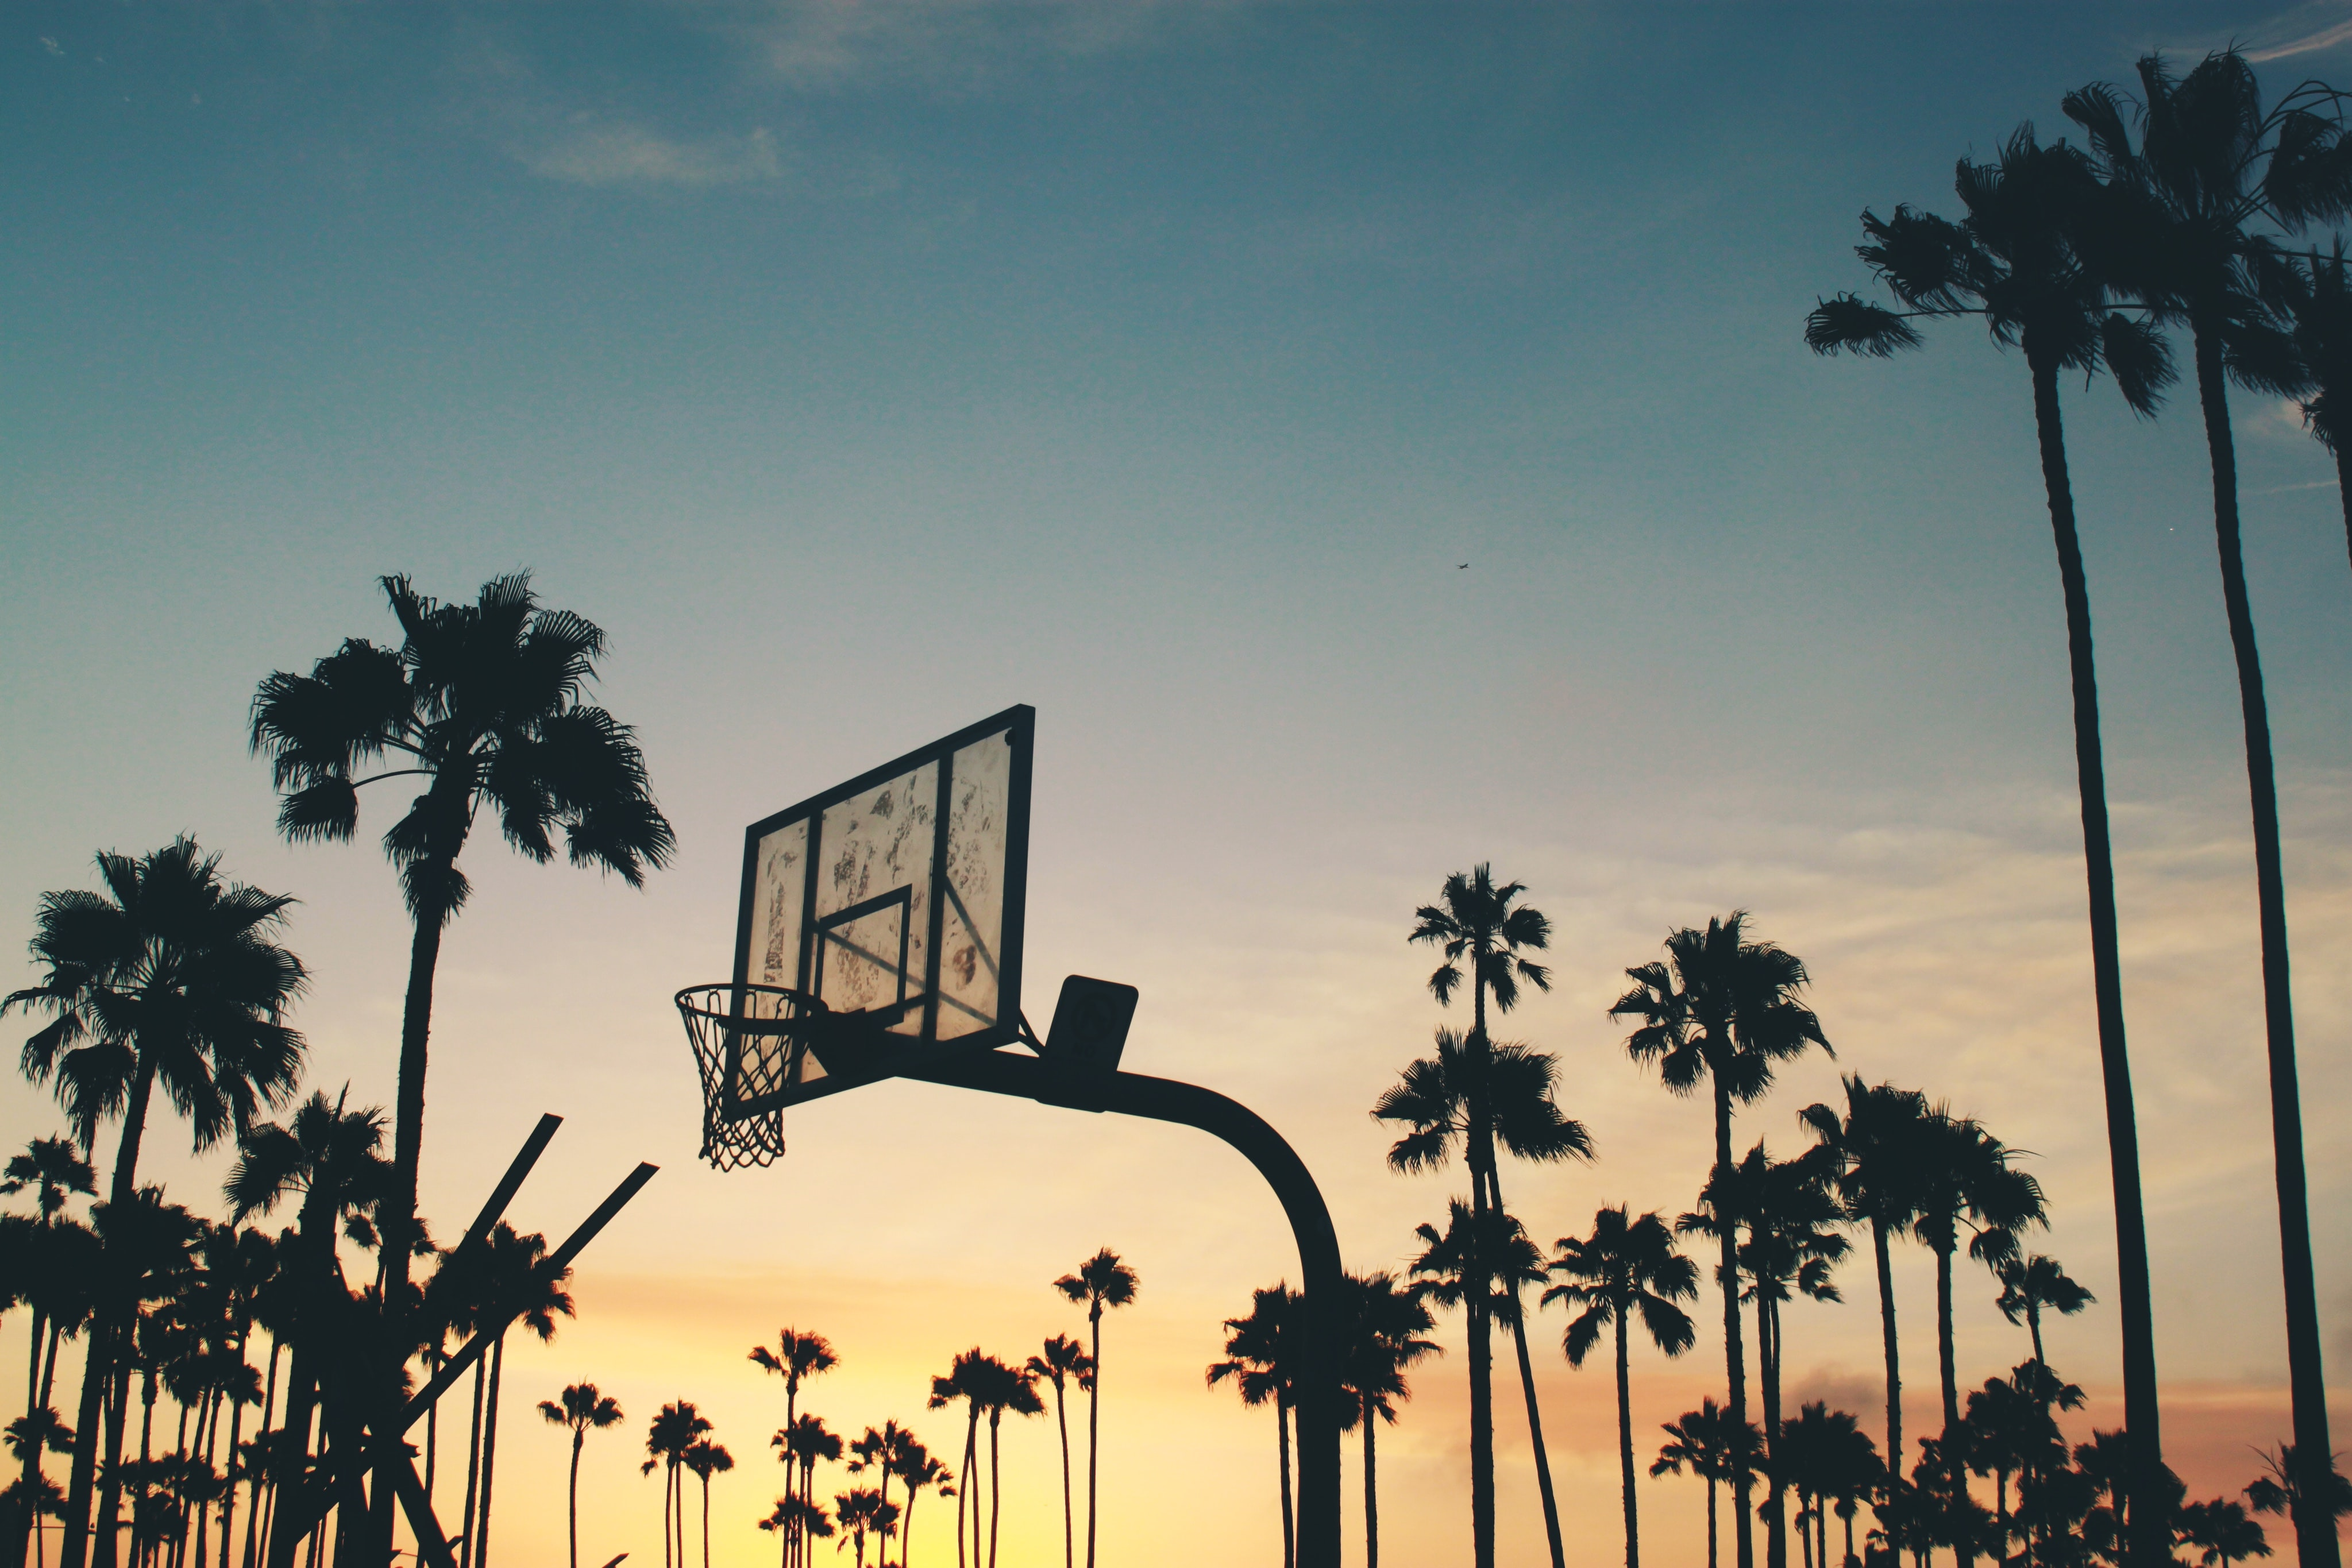 A yellow and blue sunset in Venice, Los Angeles forming silhouettes of a basketball court and numerous palm trees